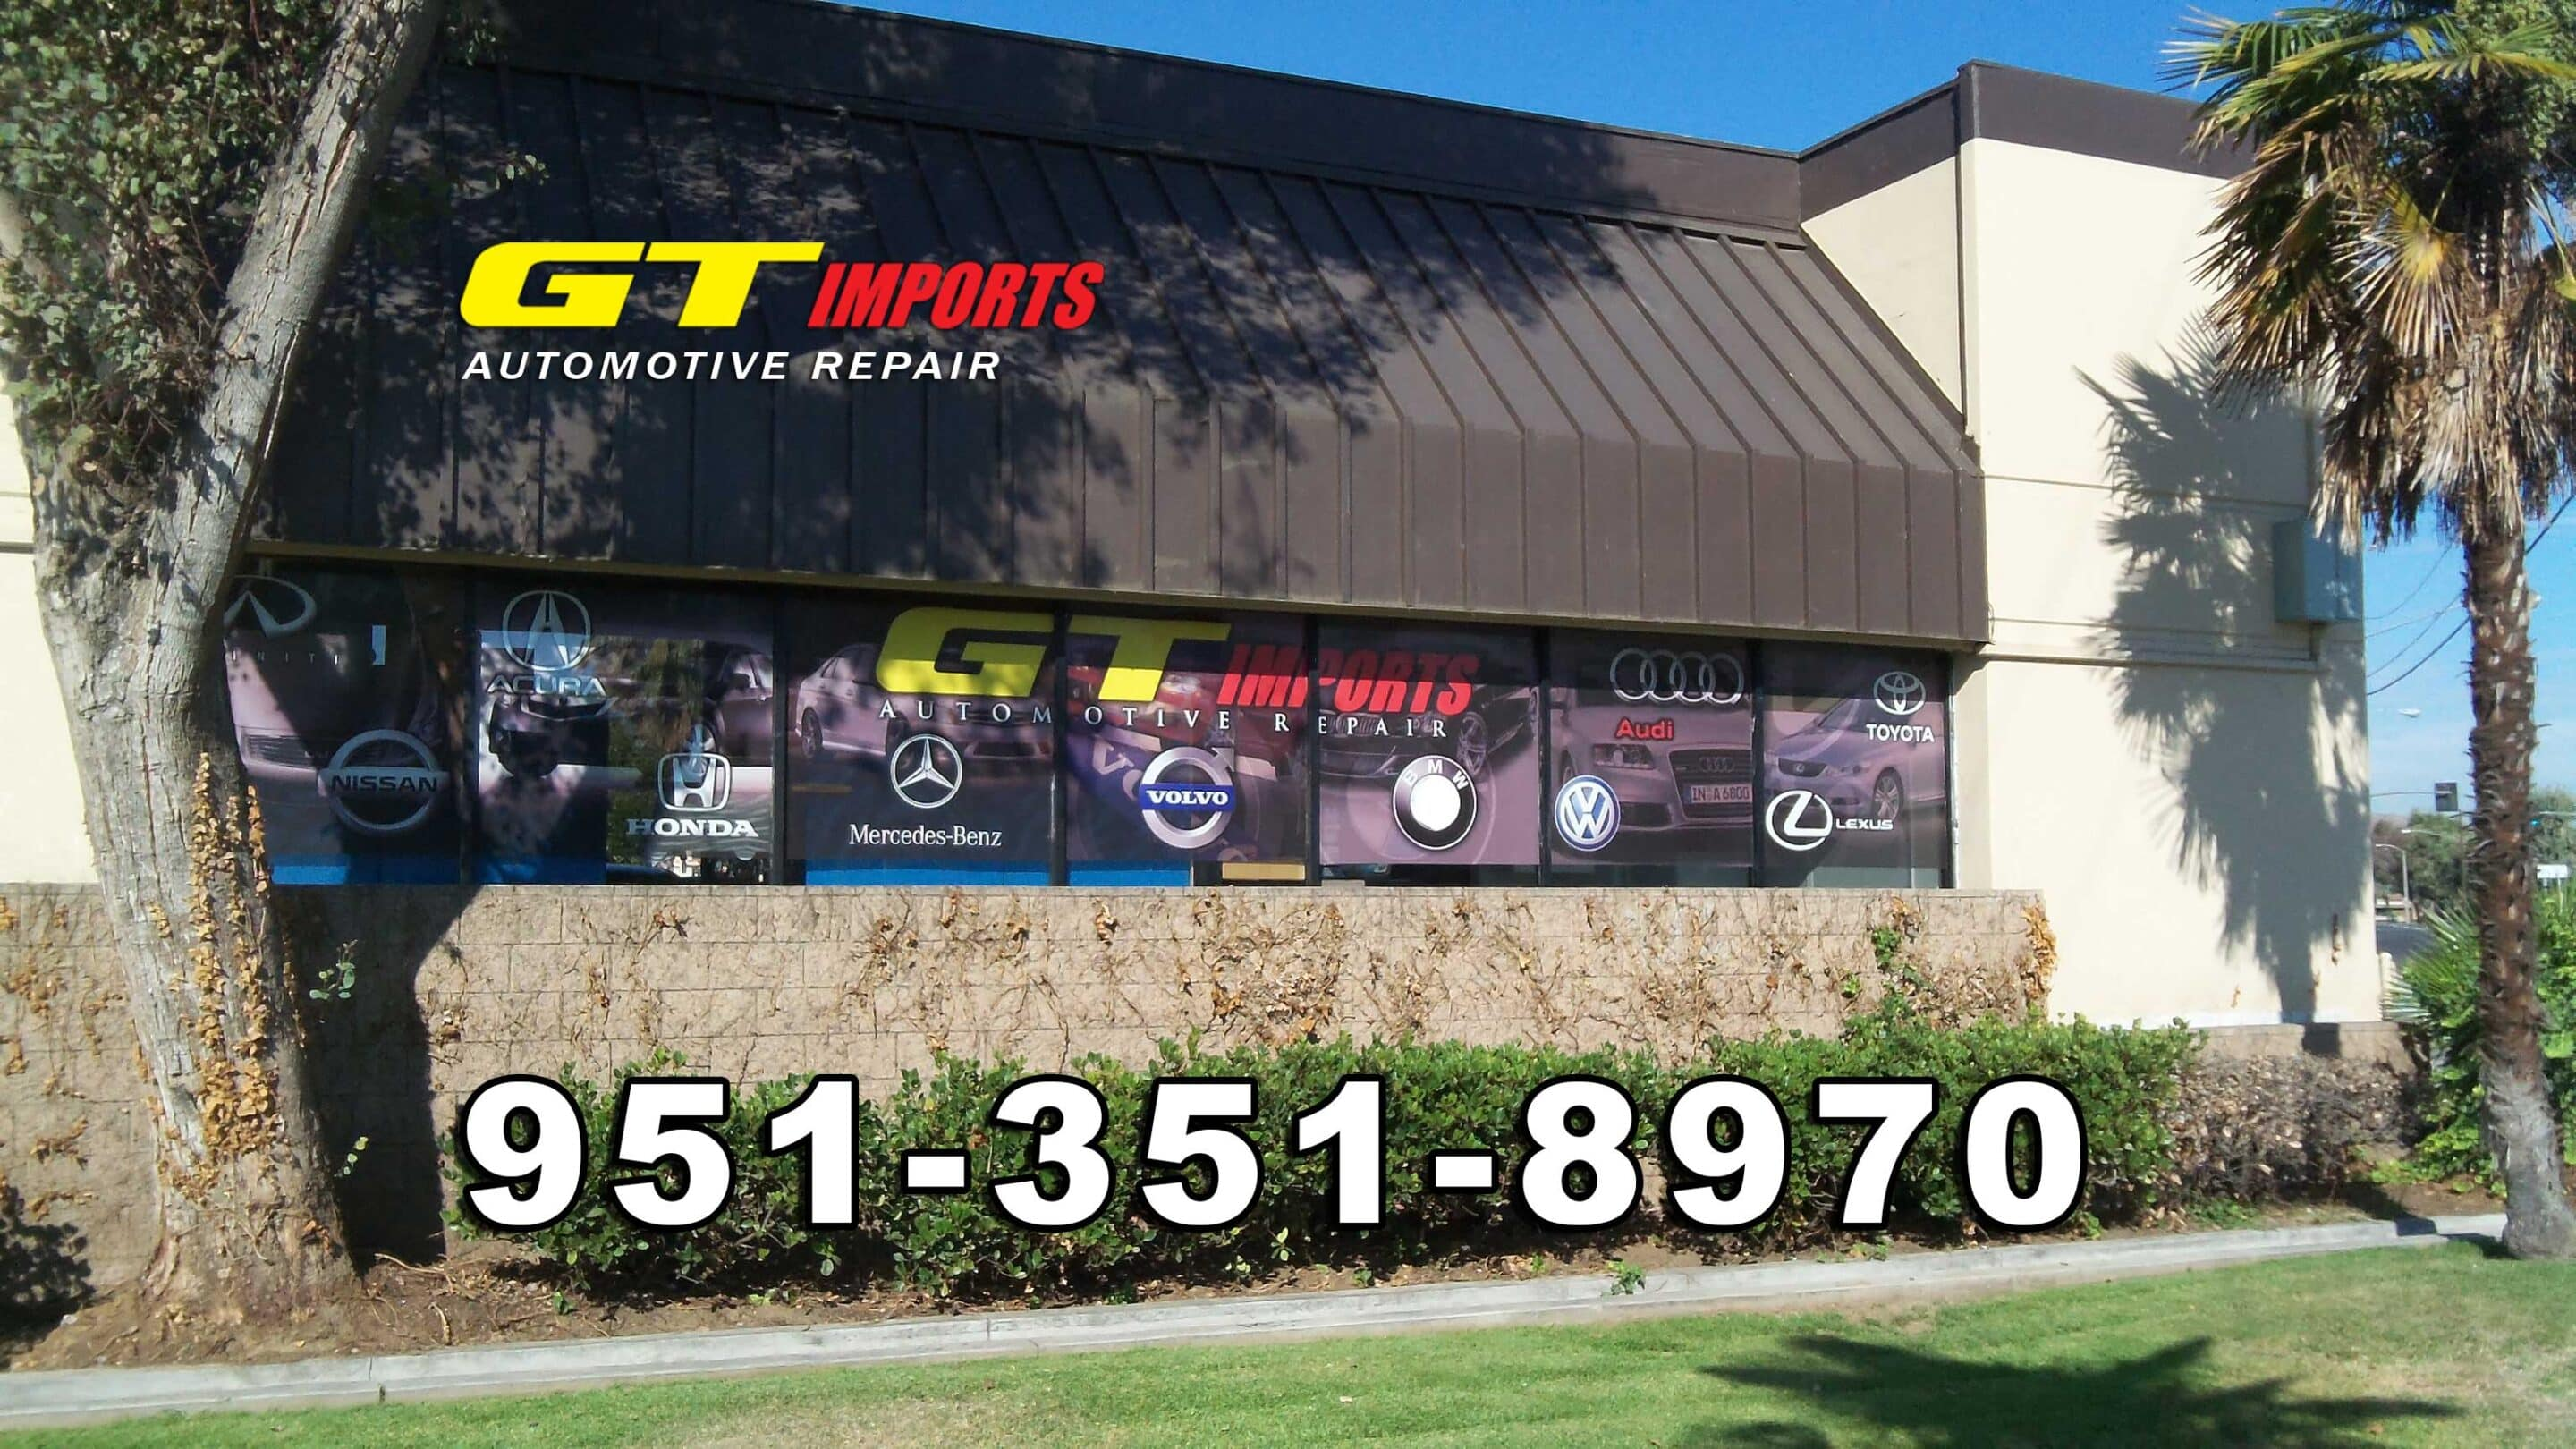 GT Imports Automotive Repair 10180 Hole Ave. Suite 100 Riverside, CA United States United States 951-351-8970 gt.imports@yahoo.com http://gtimportsautorepair.com https://plus.google.com/114692871332763007567/about